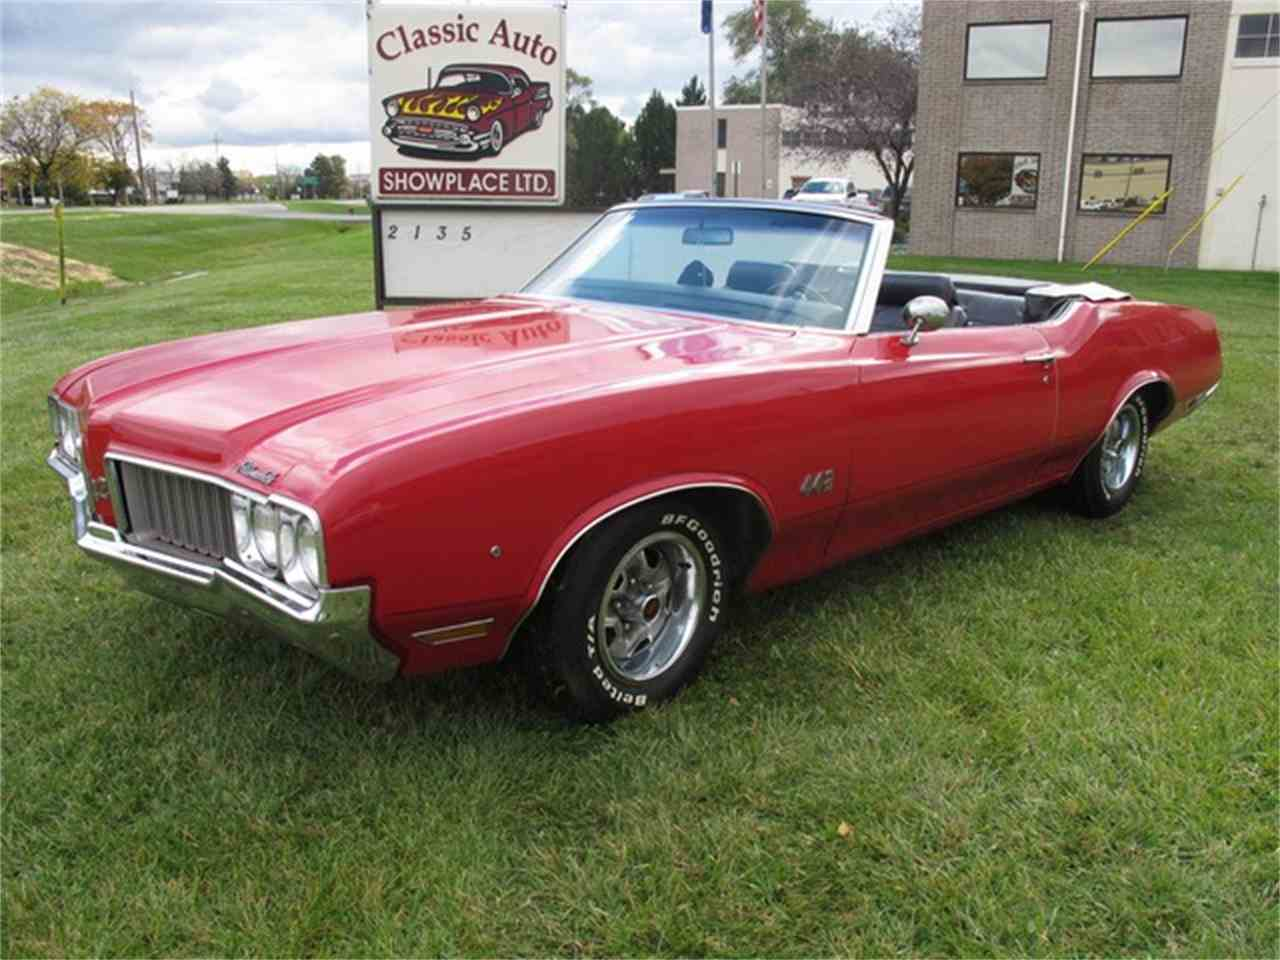 Classifieds for Classic Auto Showplace